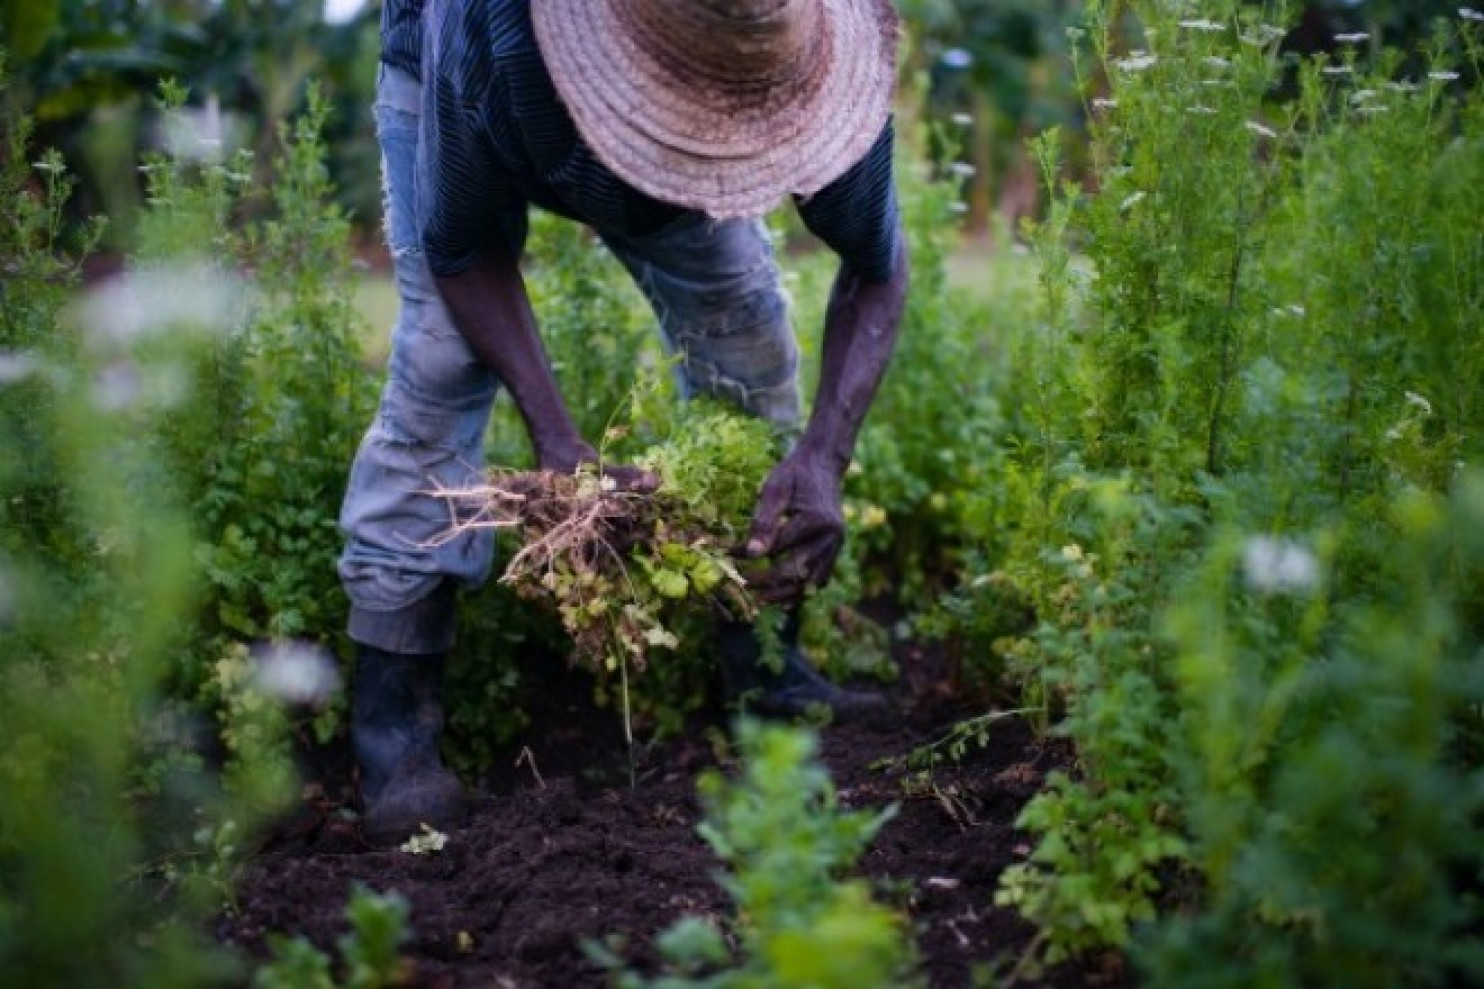 Early in the morning, as the sun rises, Geraldo Carrion, 72, picks cilantro plants that have gone to seed, on a small farm in Santiago, Cuba. (Sarah L. Voisin/The Washington Post)